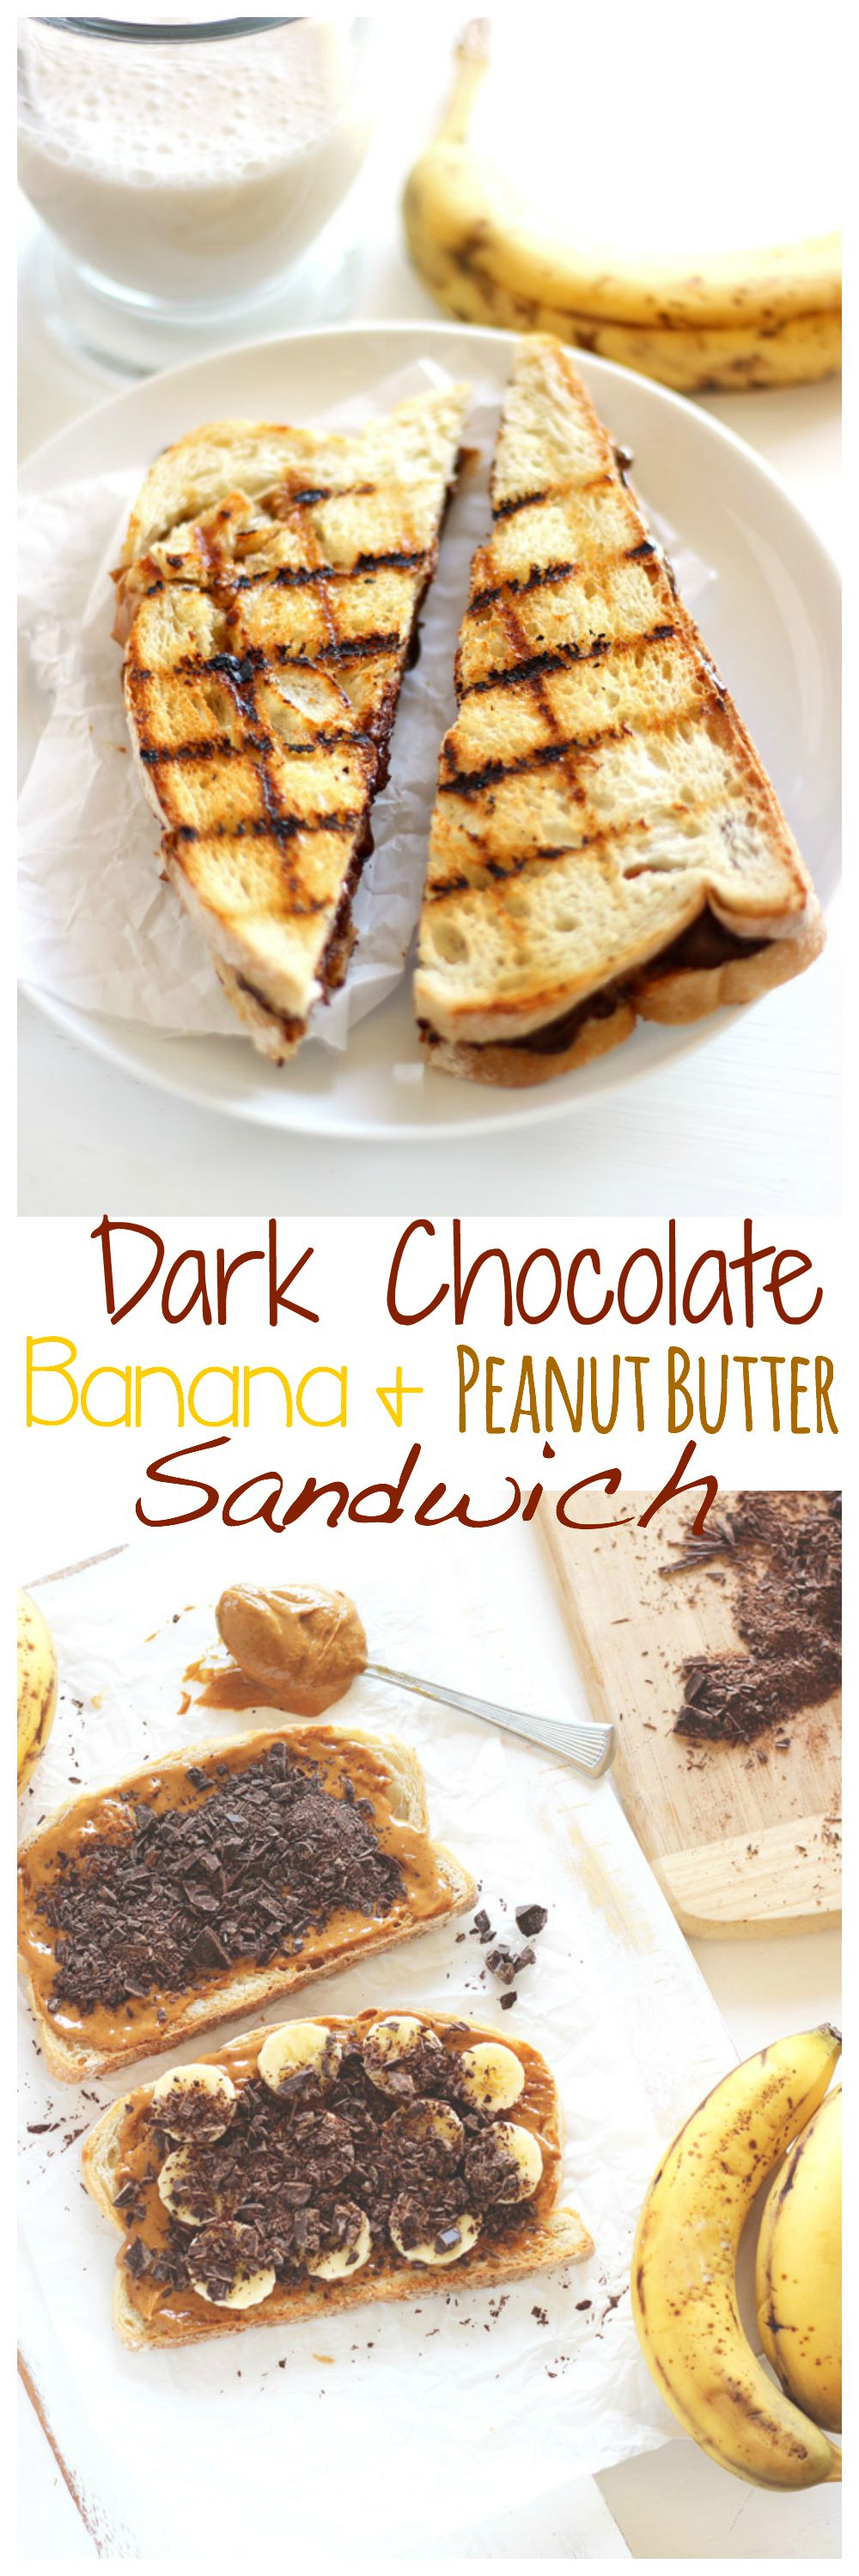 Grilled Chocolate Banana and Peanut Butter Sandwich. Melted dark ...